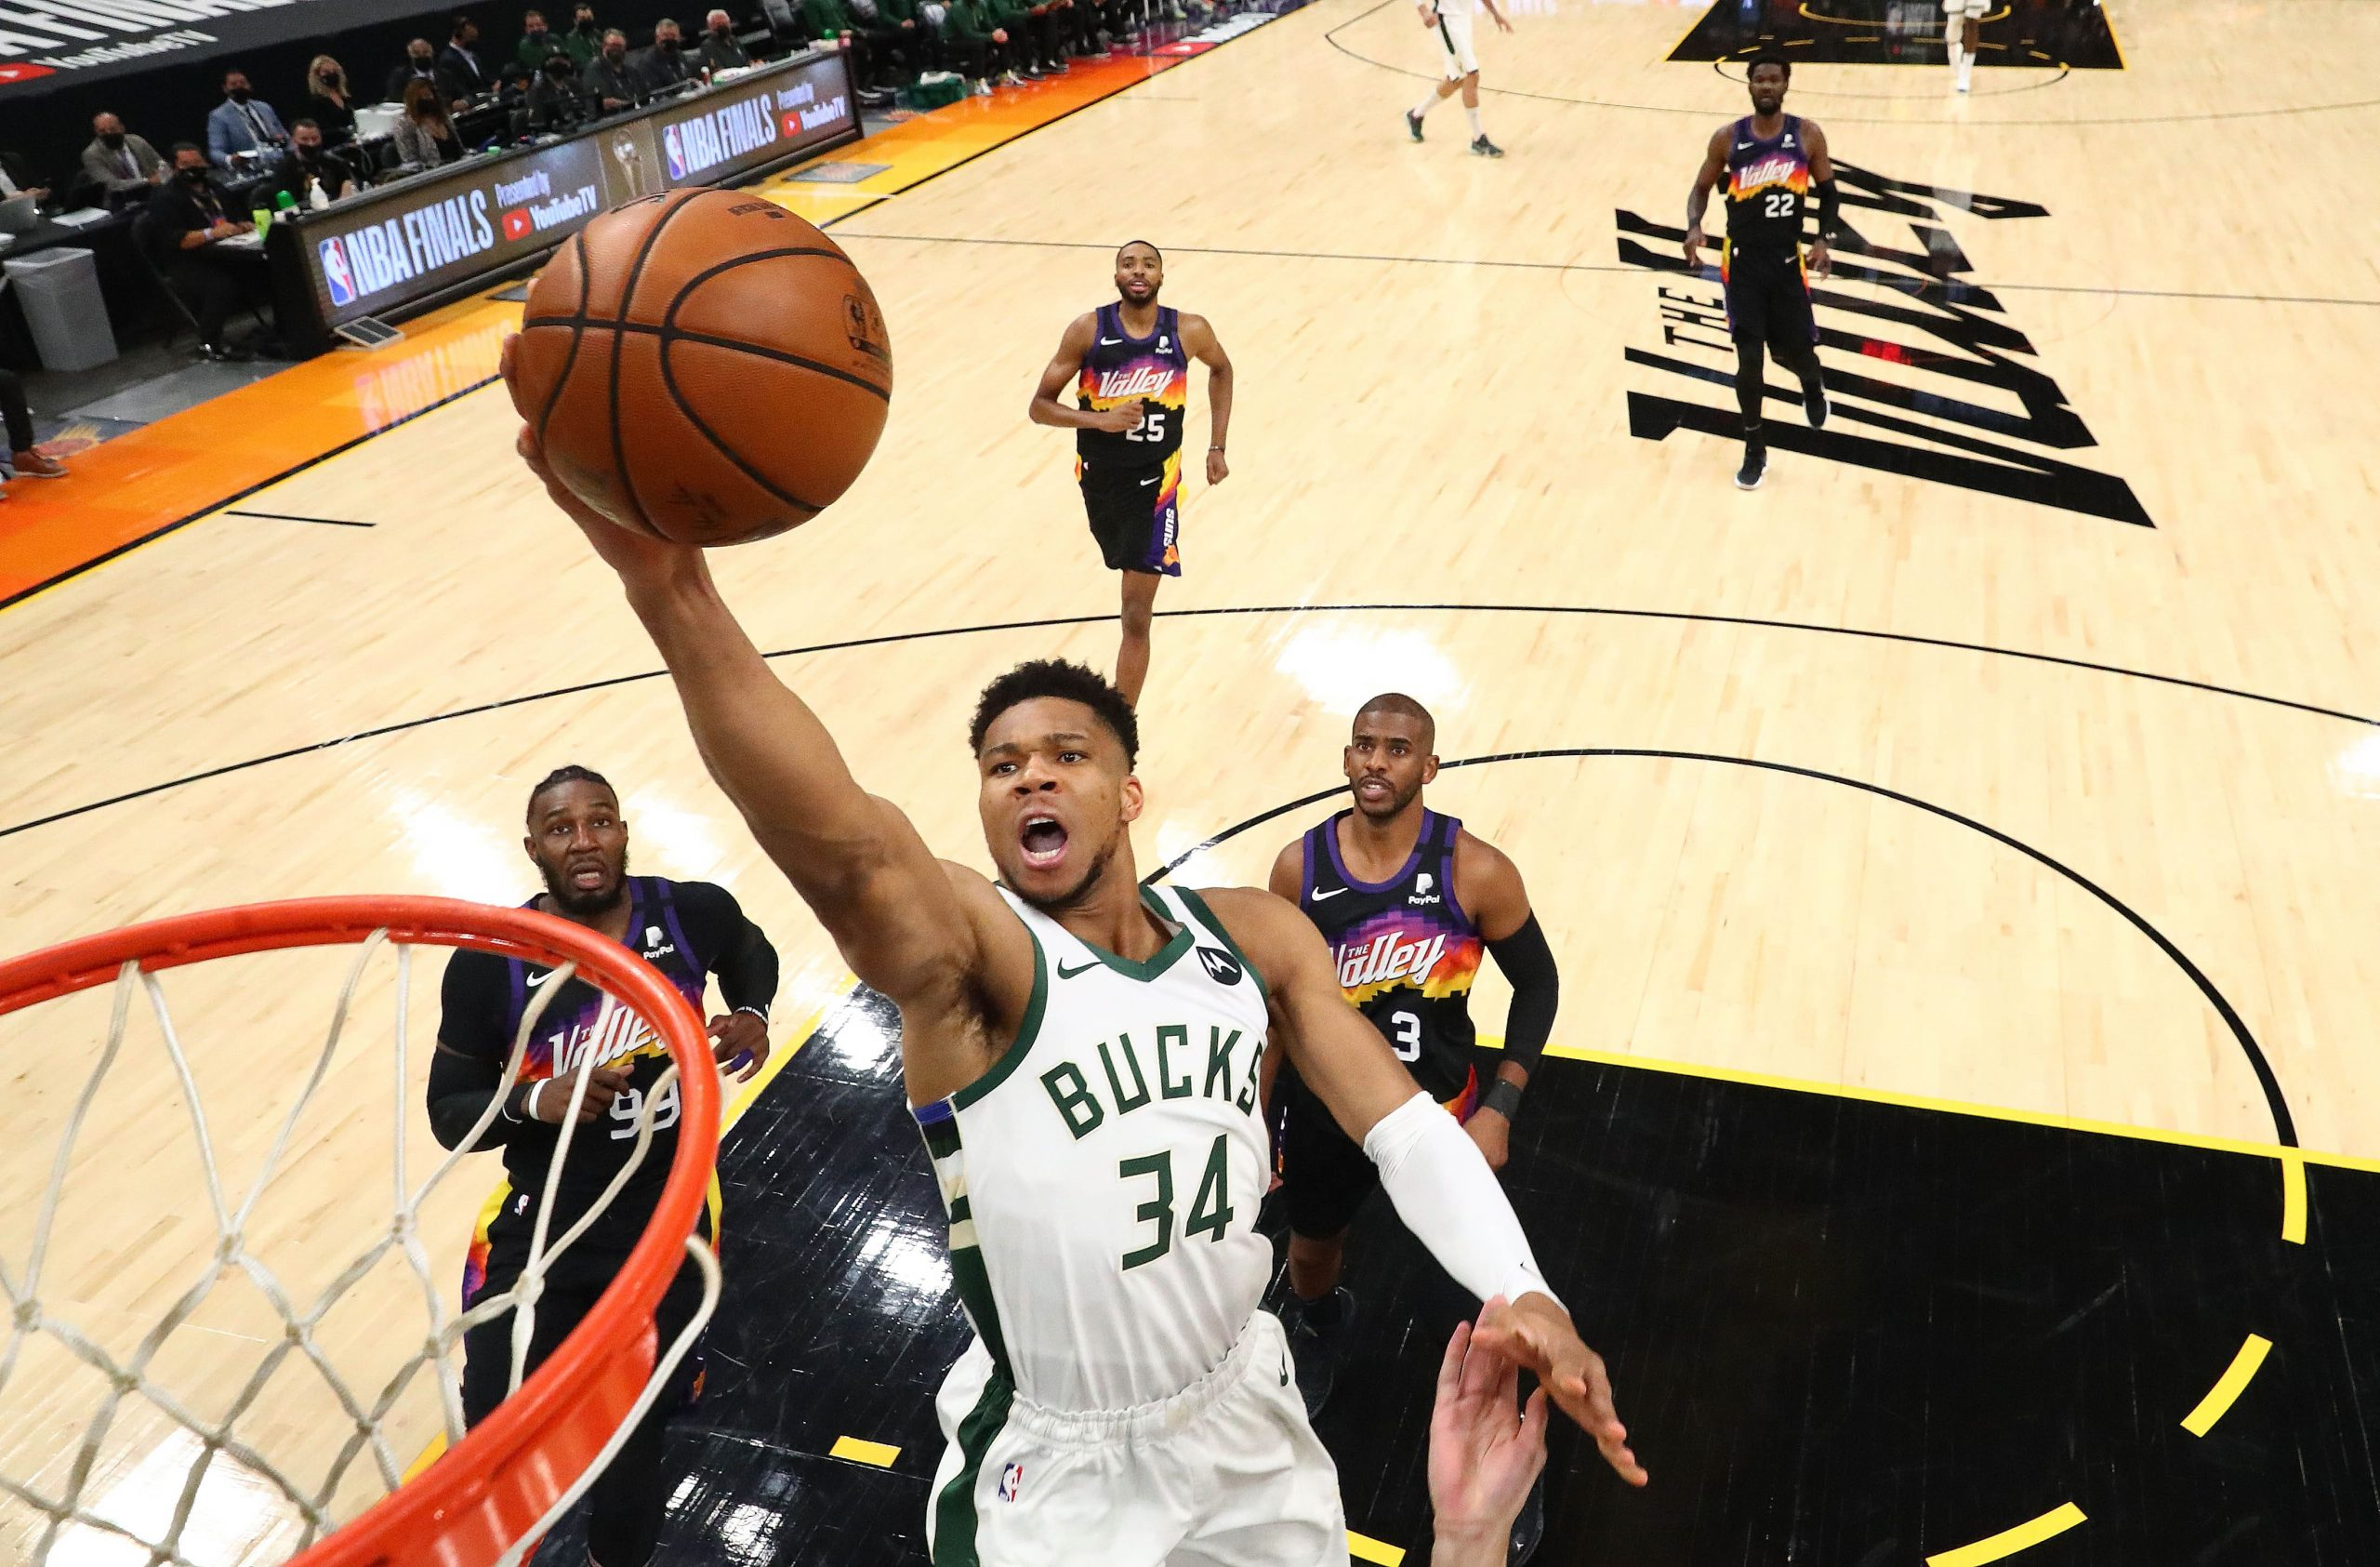 Milwaukee Bucks forward Giannis Antetokounmpo (34) drives to the basket against the Phoenix Suns during game two of the 2021 NBA Finals at Phoenix Suns Arena.